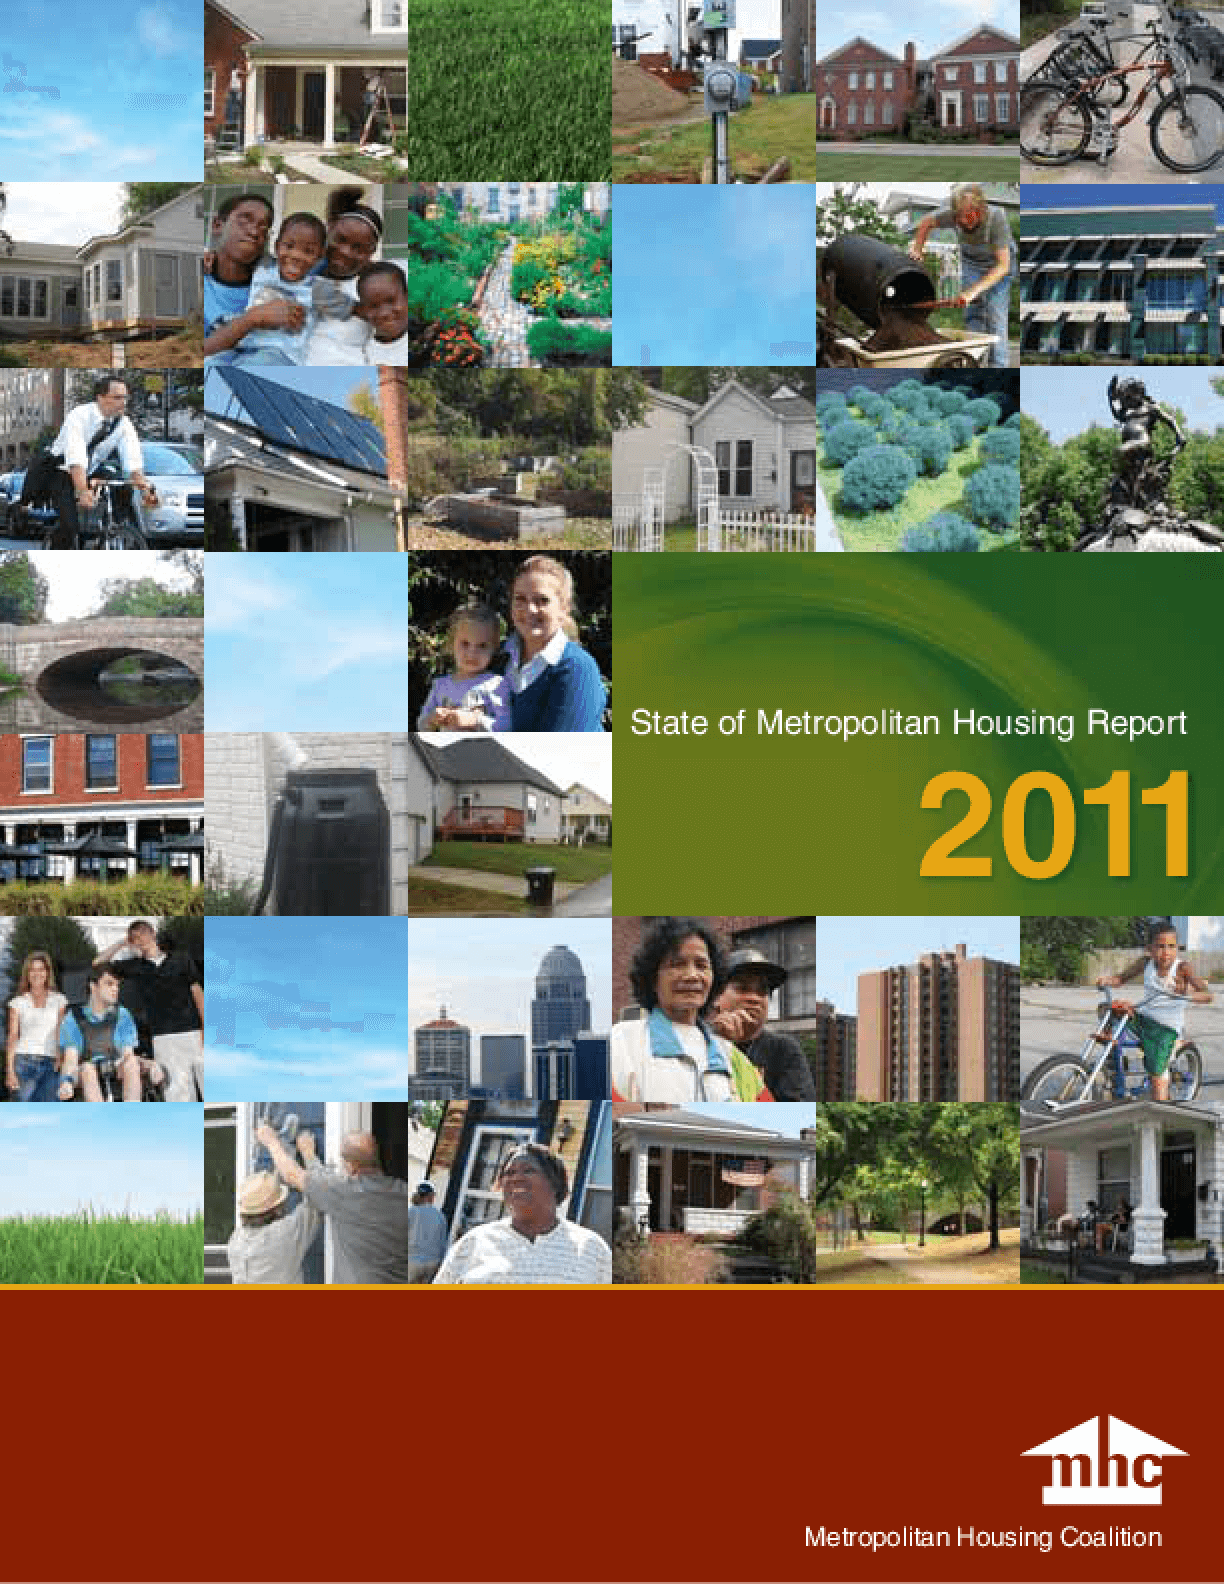 2011 State of Metropolitan Housing Report